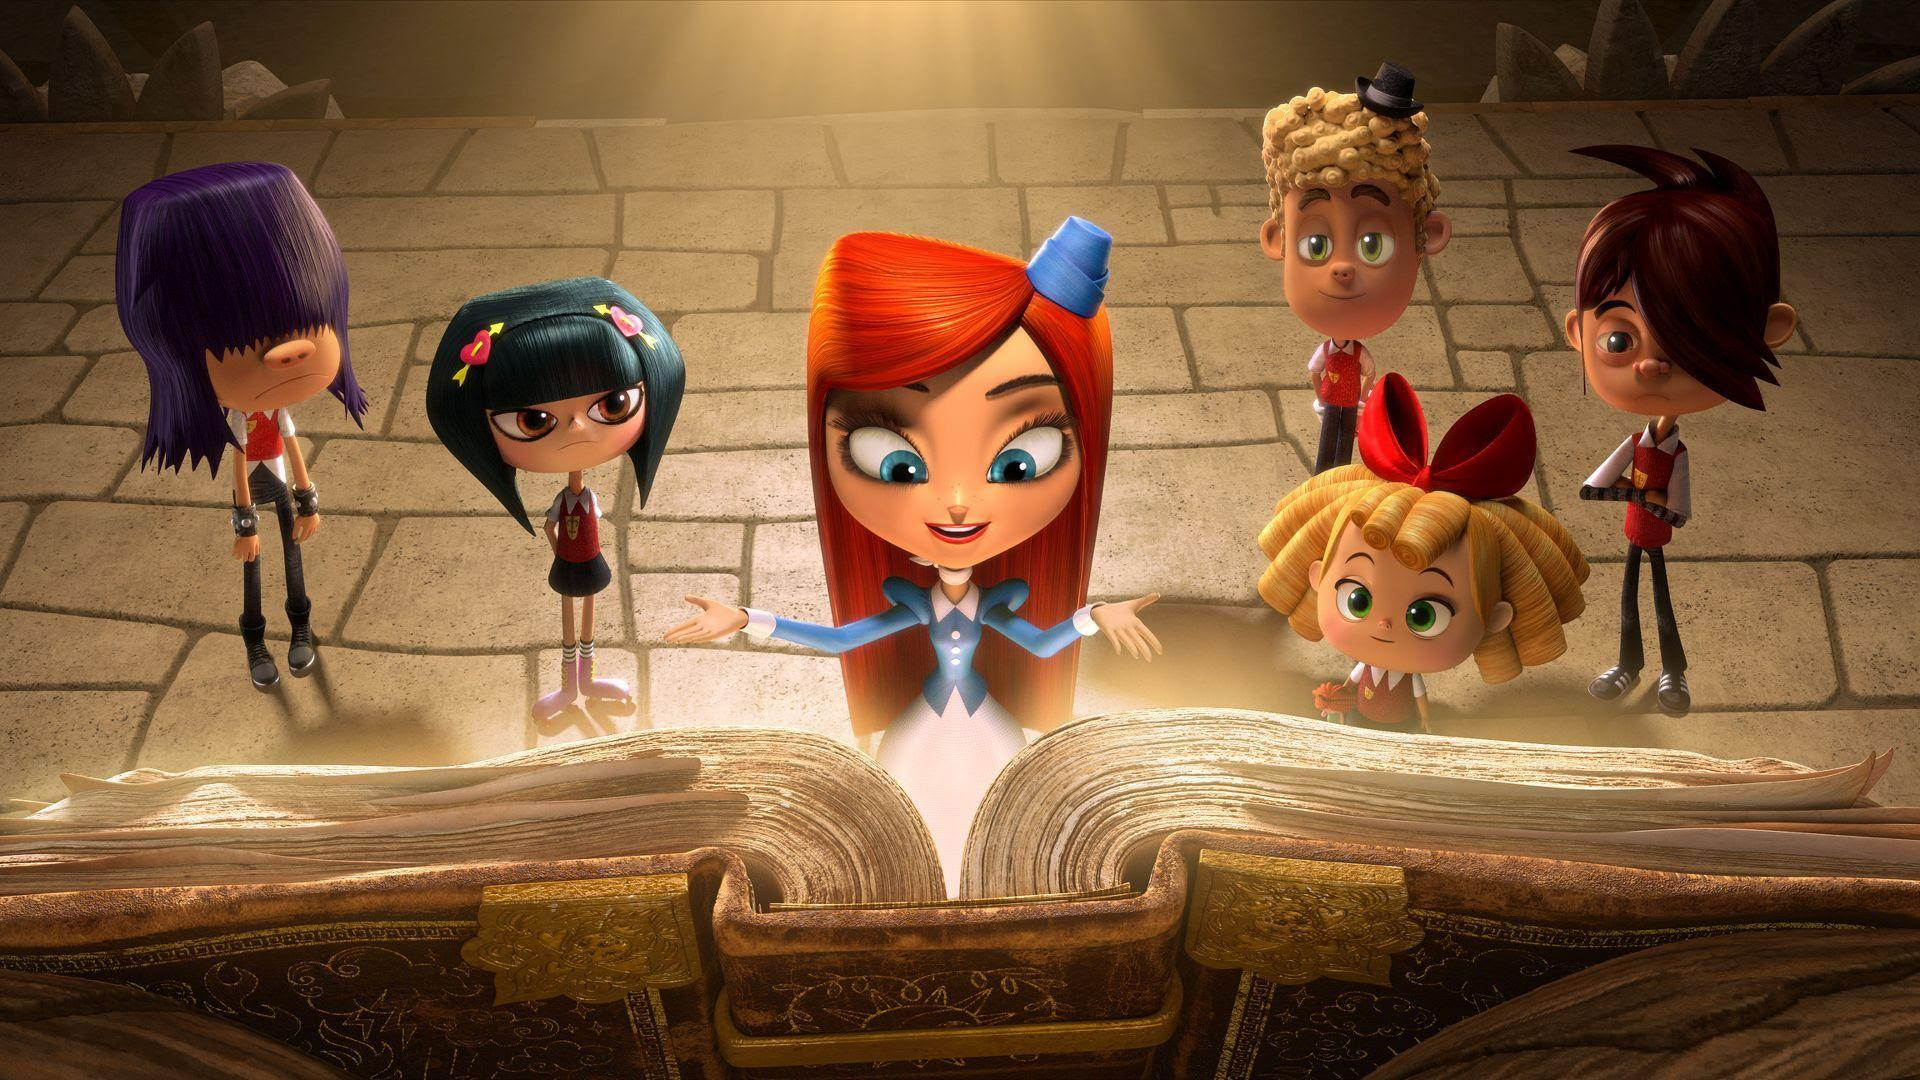 Hd Looking At The Big Book The Book Of Life Wallpaper Download